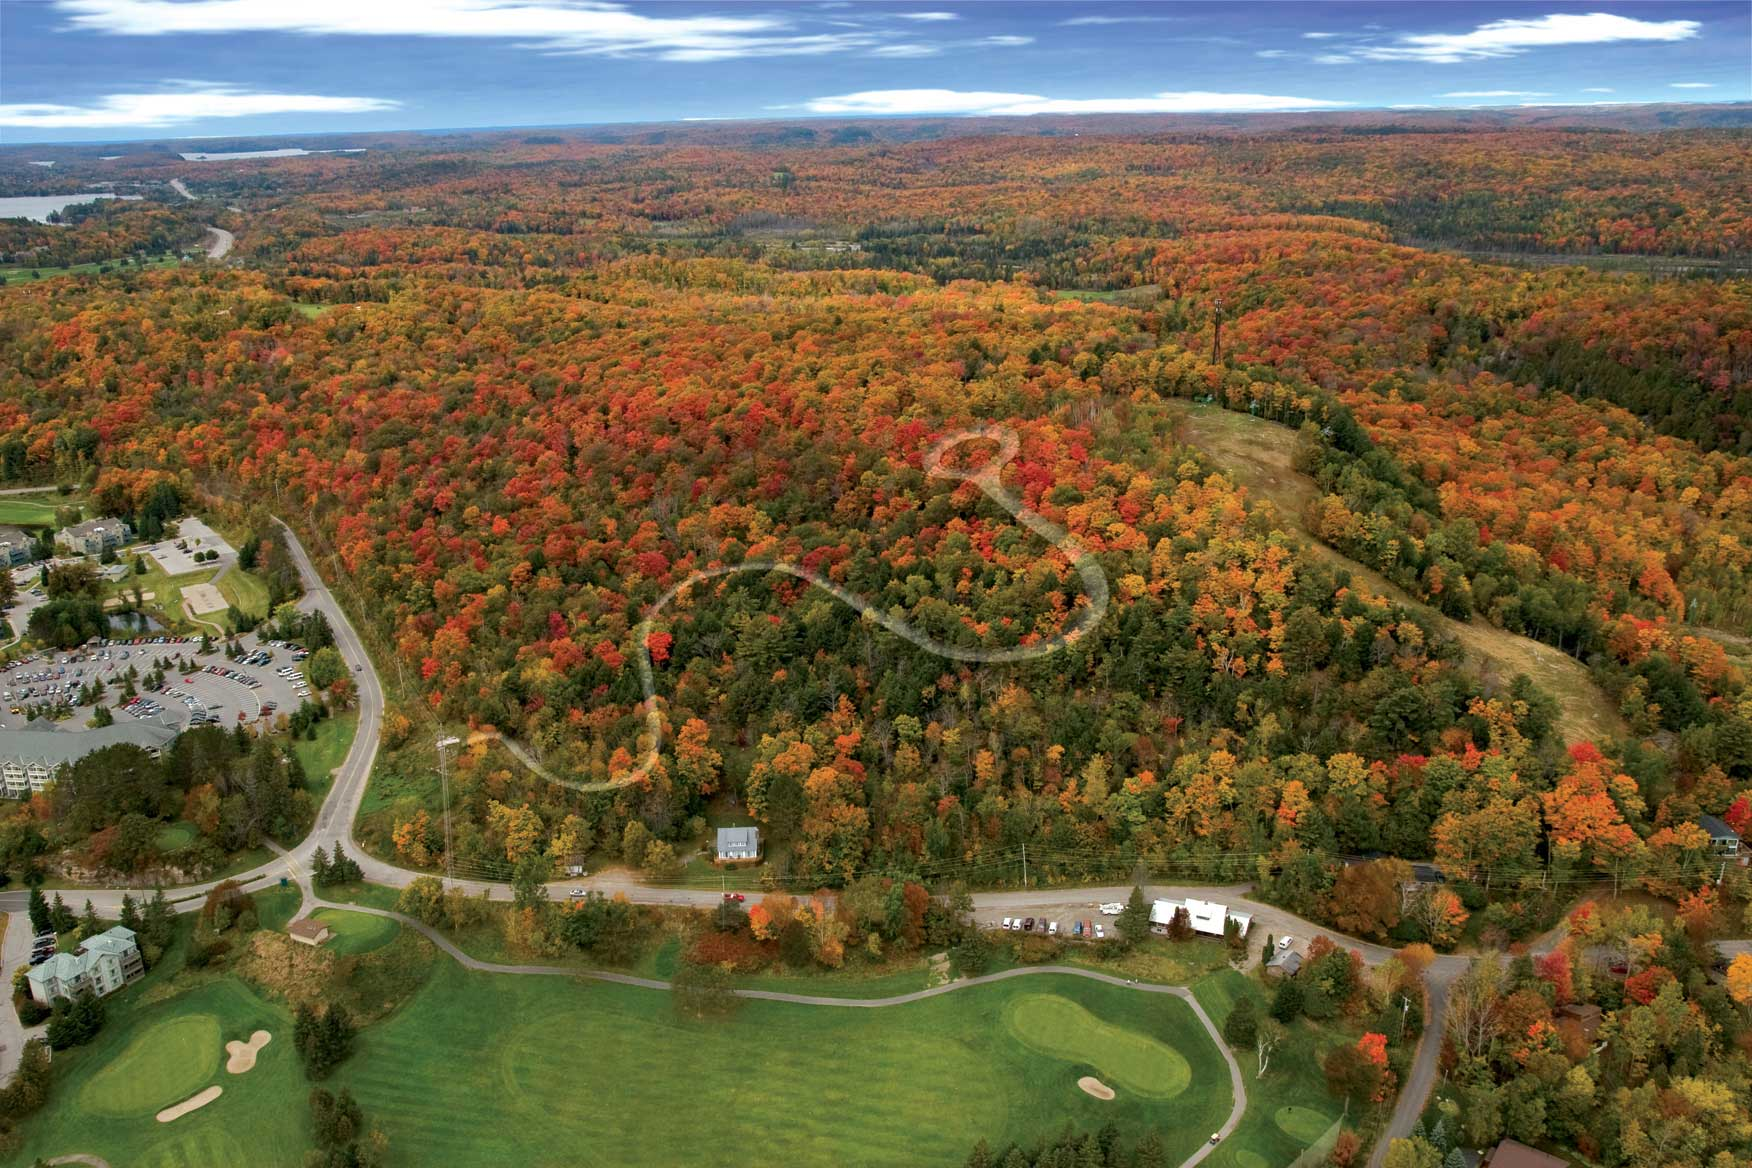 Aerial view of region showing winding driveway into site with autumn leaves